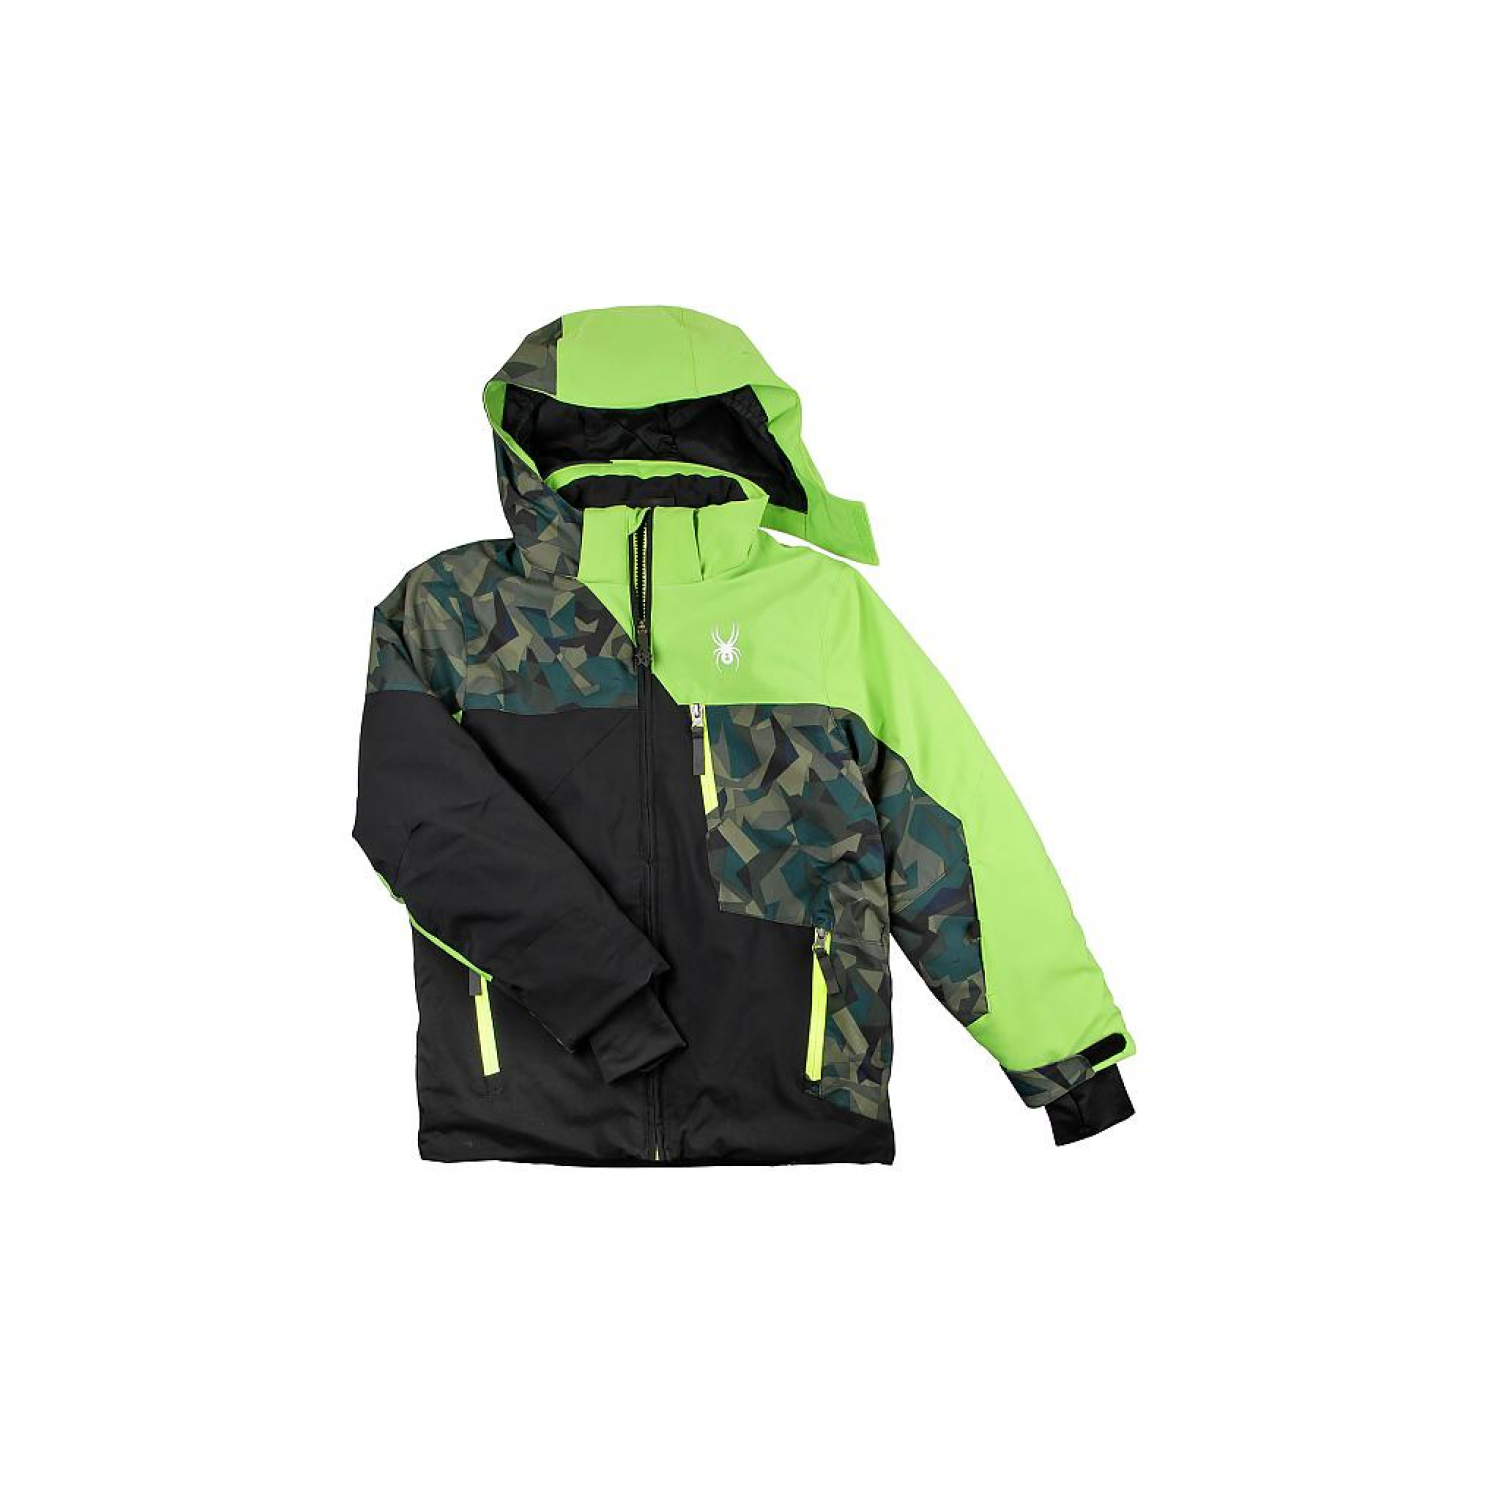 Spyder Ambrush Jacket 231013 black Kinder Skijacke Gr. 128